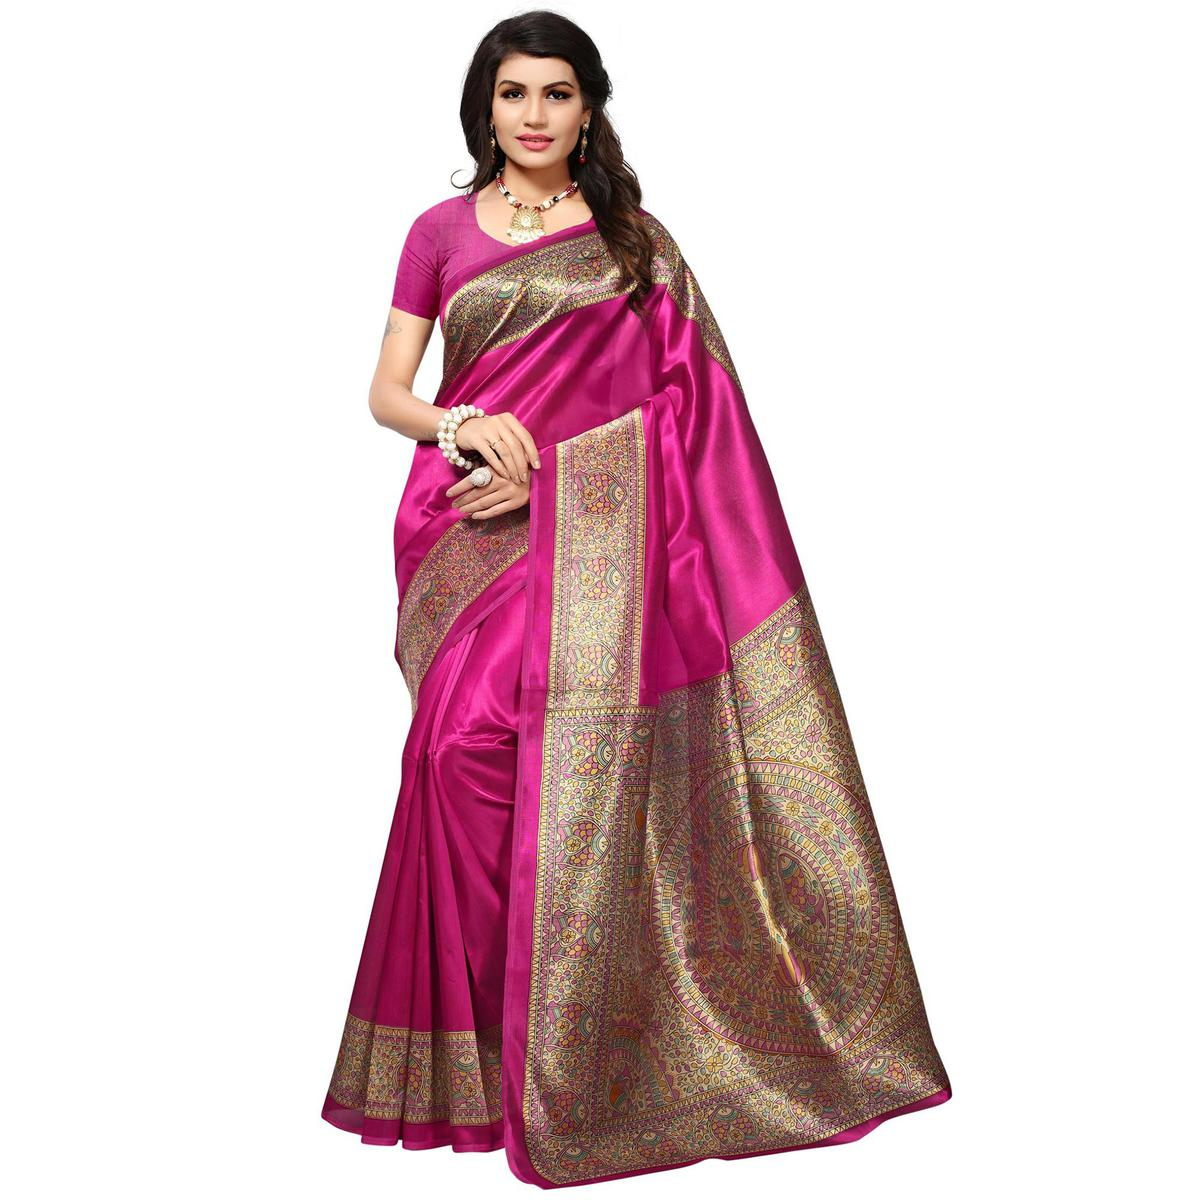 45397fecce Buy Dark Pink Festive Wear Kalamkari Printed Mysore Art Silk Saree for  womens online India, Best Prices, Reviews - Peachmode